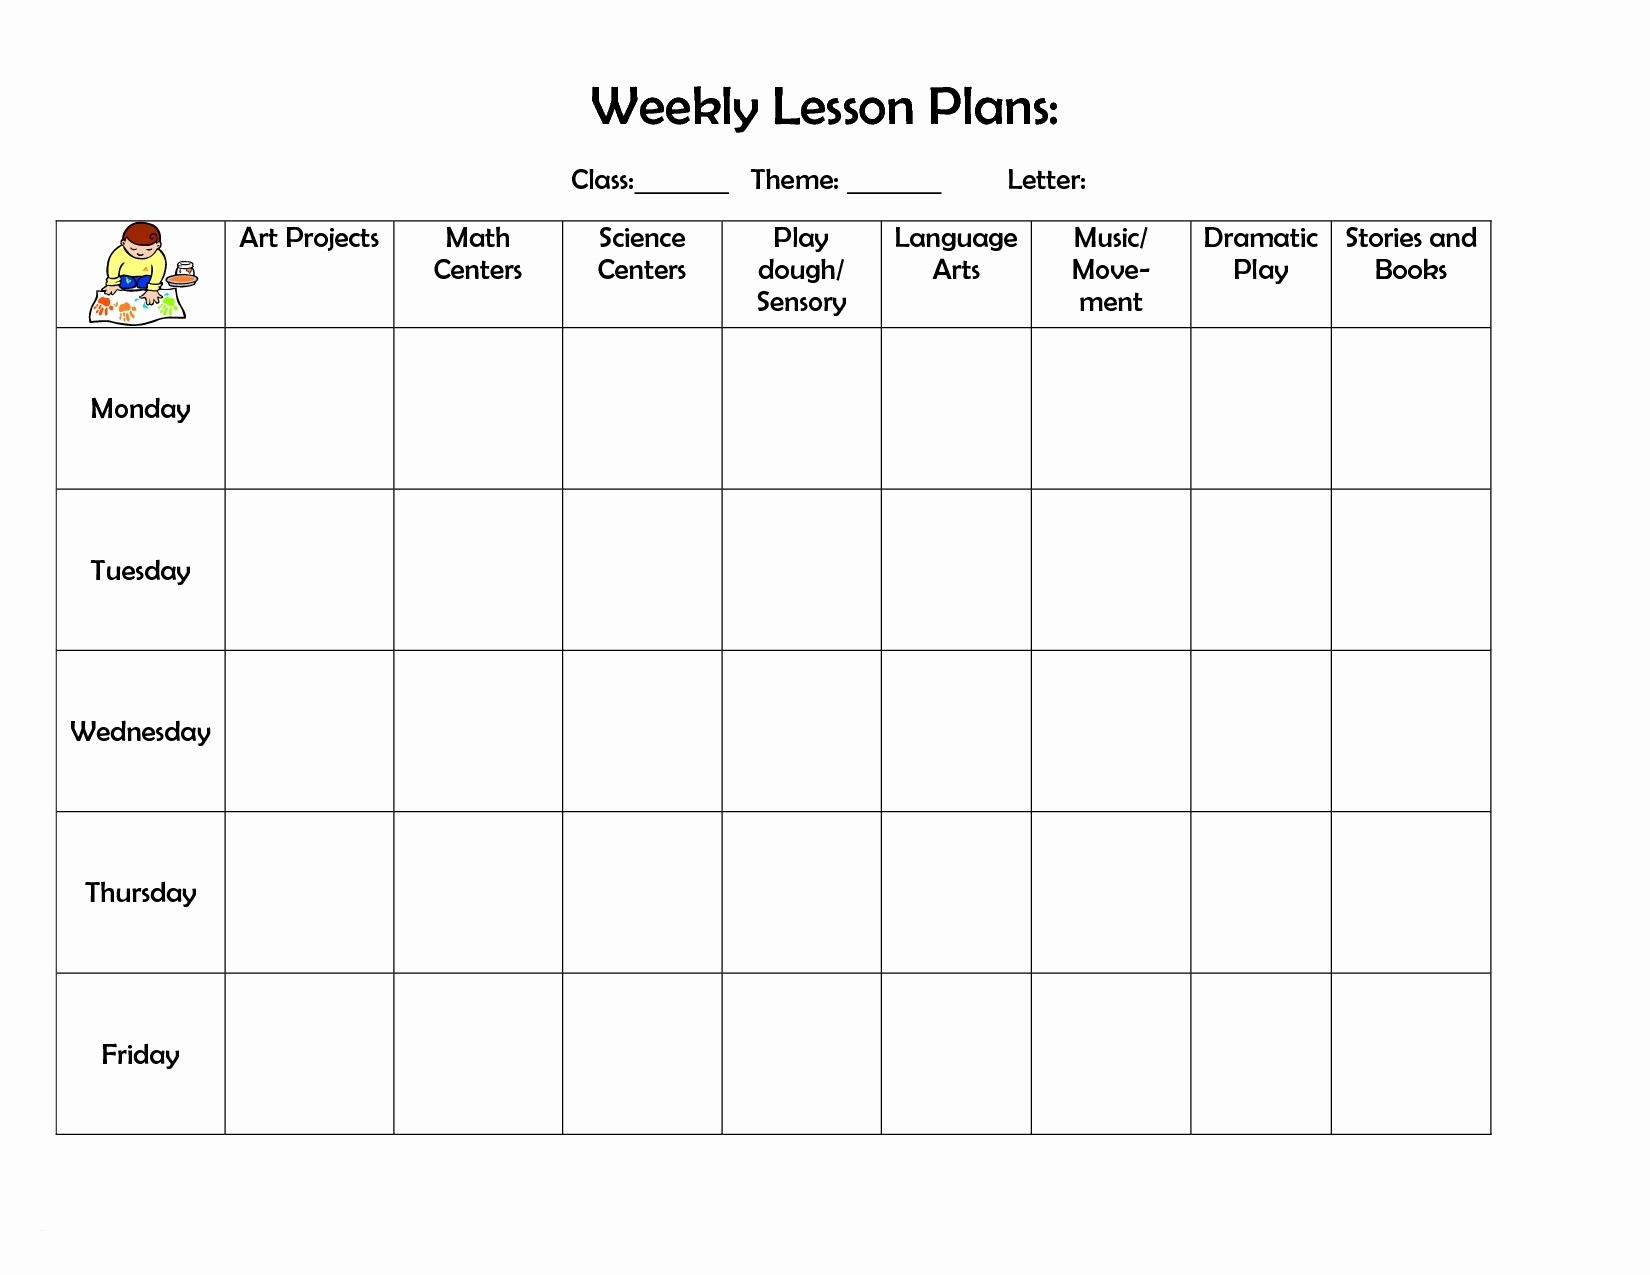 Free Lesson Plan Template Word Doc Monthly Meal Planner Calendar intended for Free Lesson Plan Printable Calendar